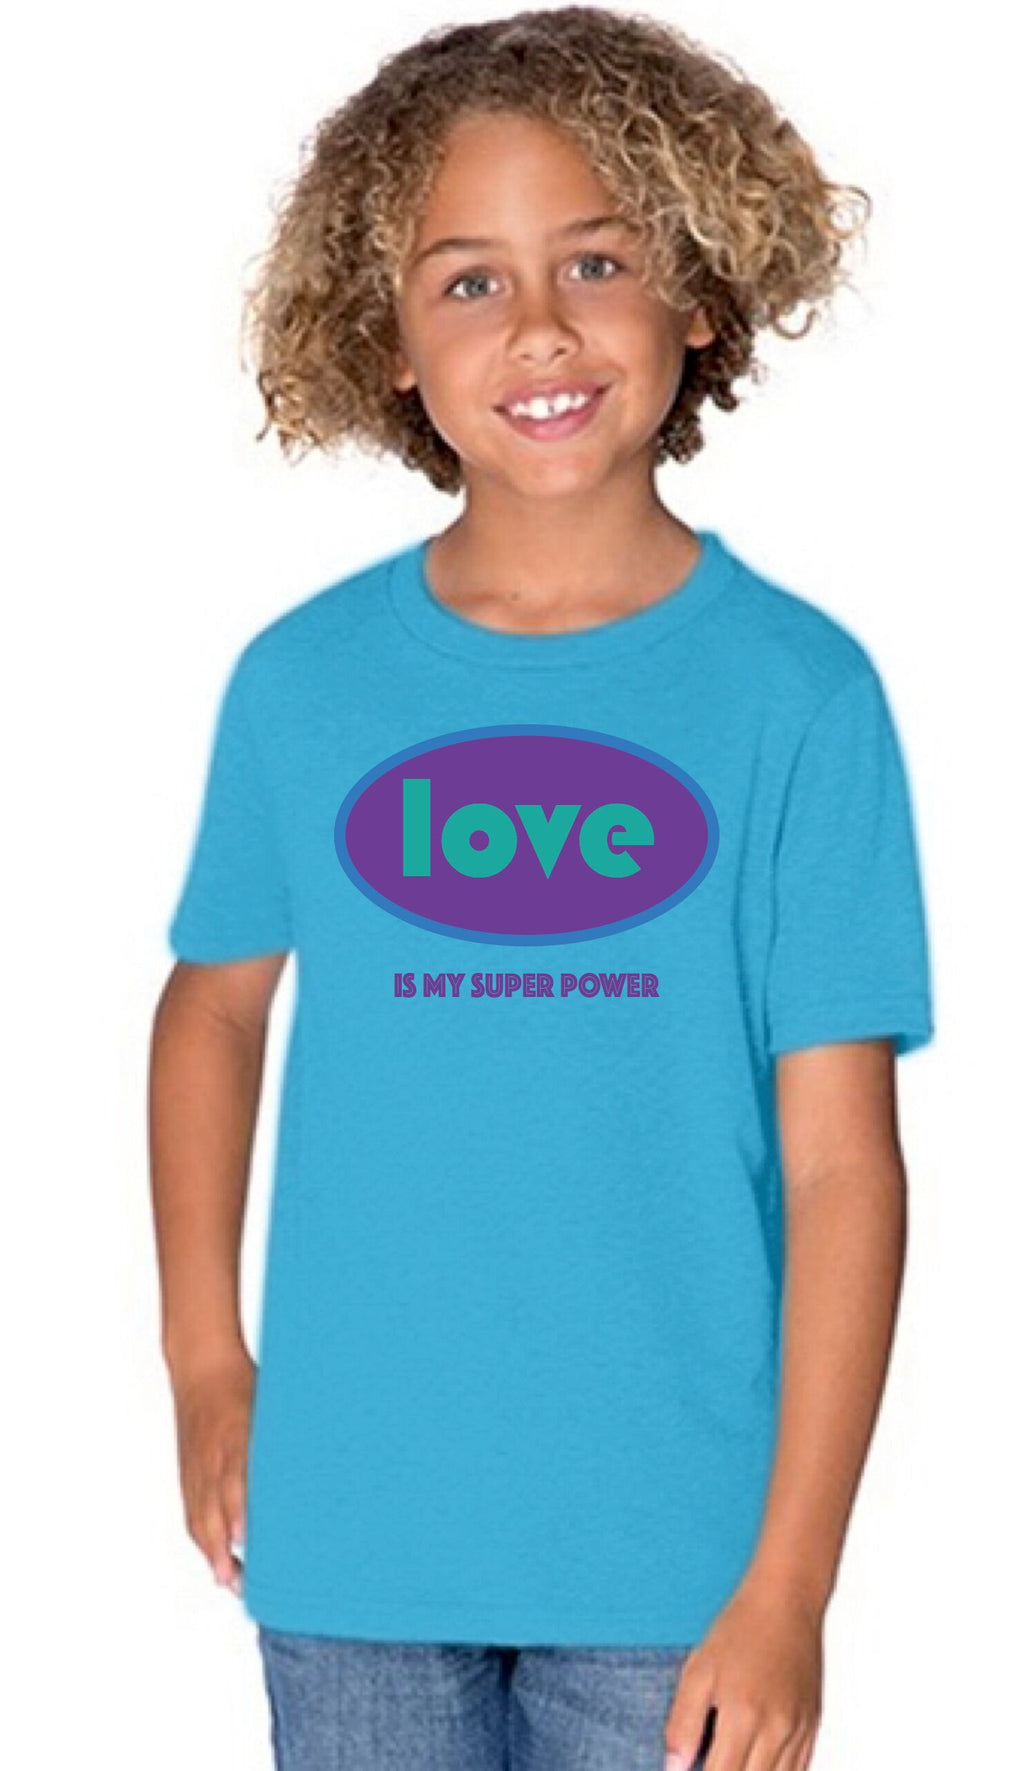 Love is My Superpower Kids Tee (Boys, Ash grey)